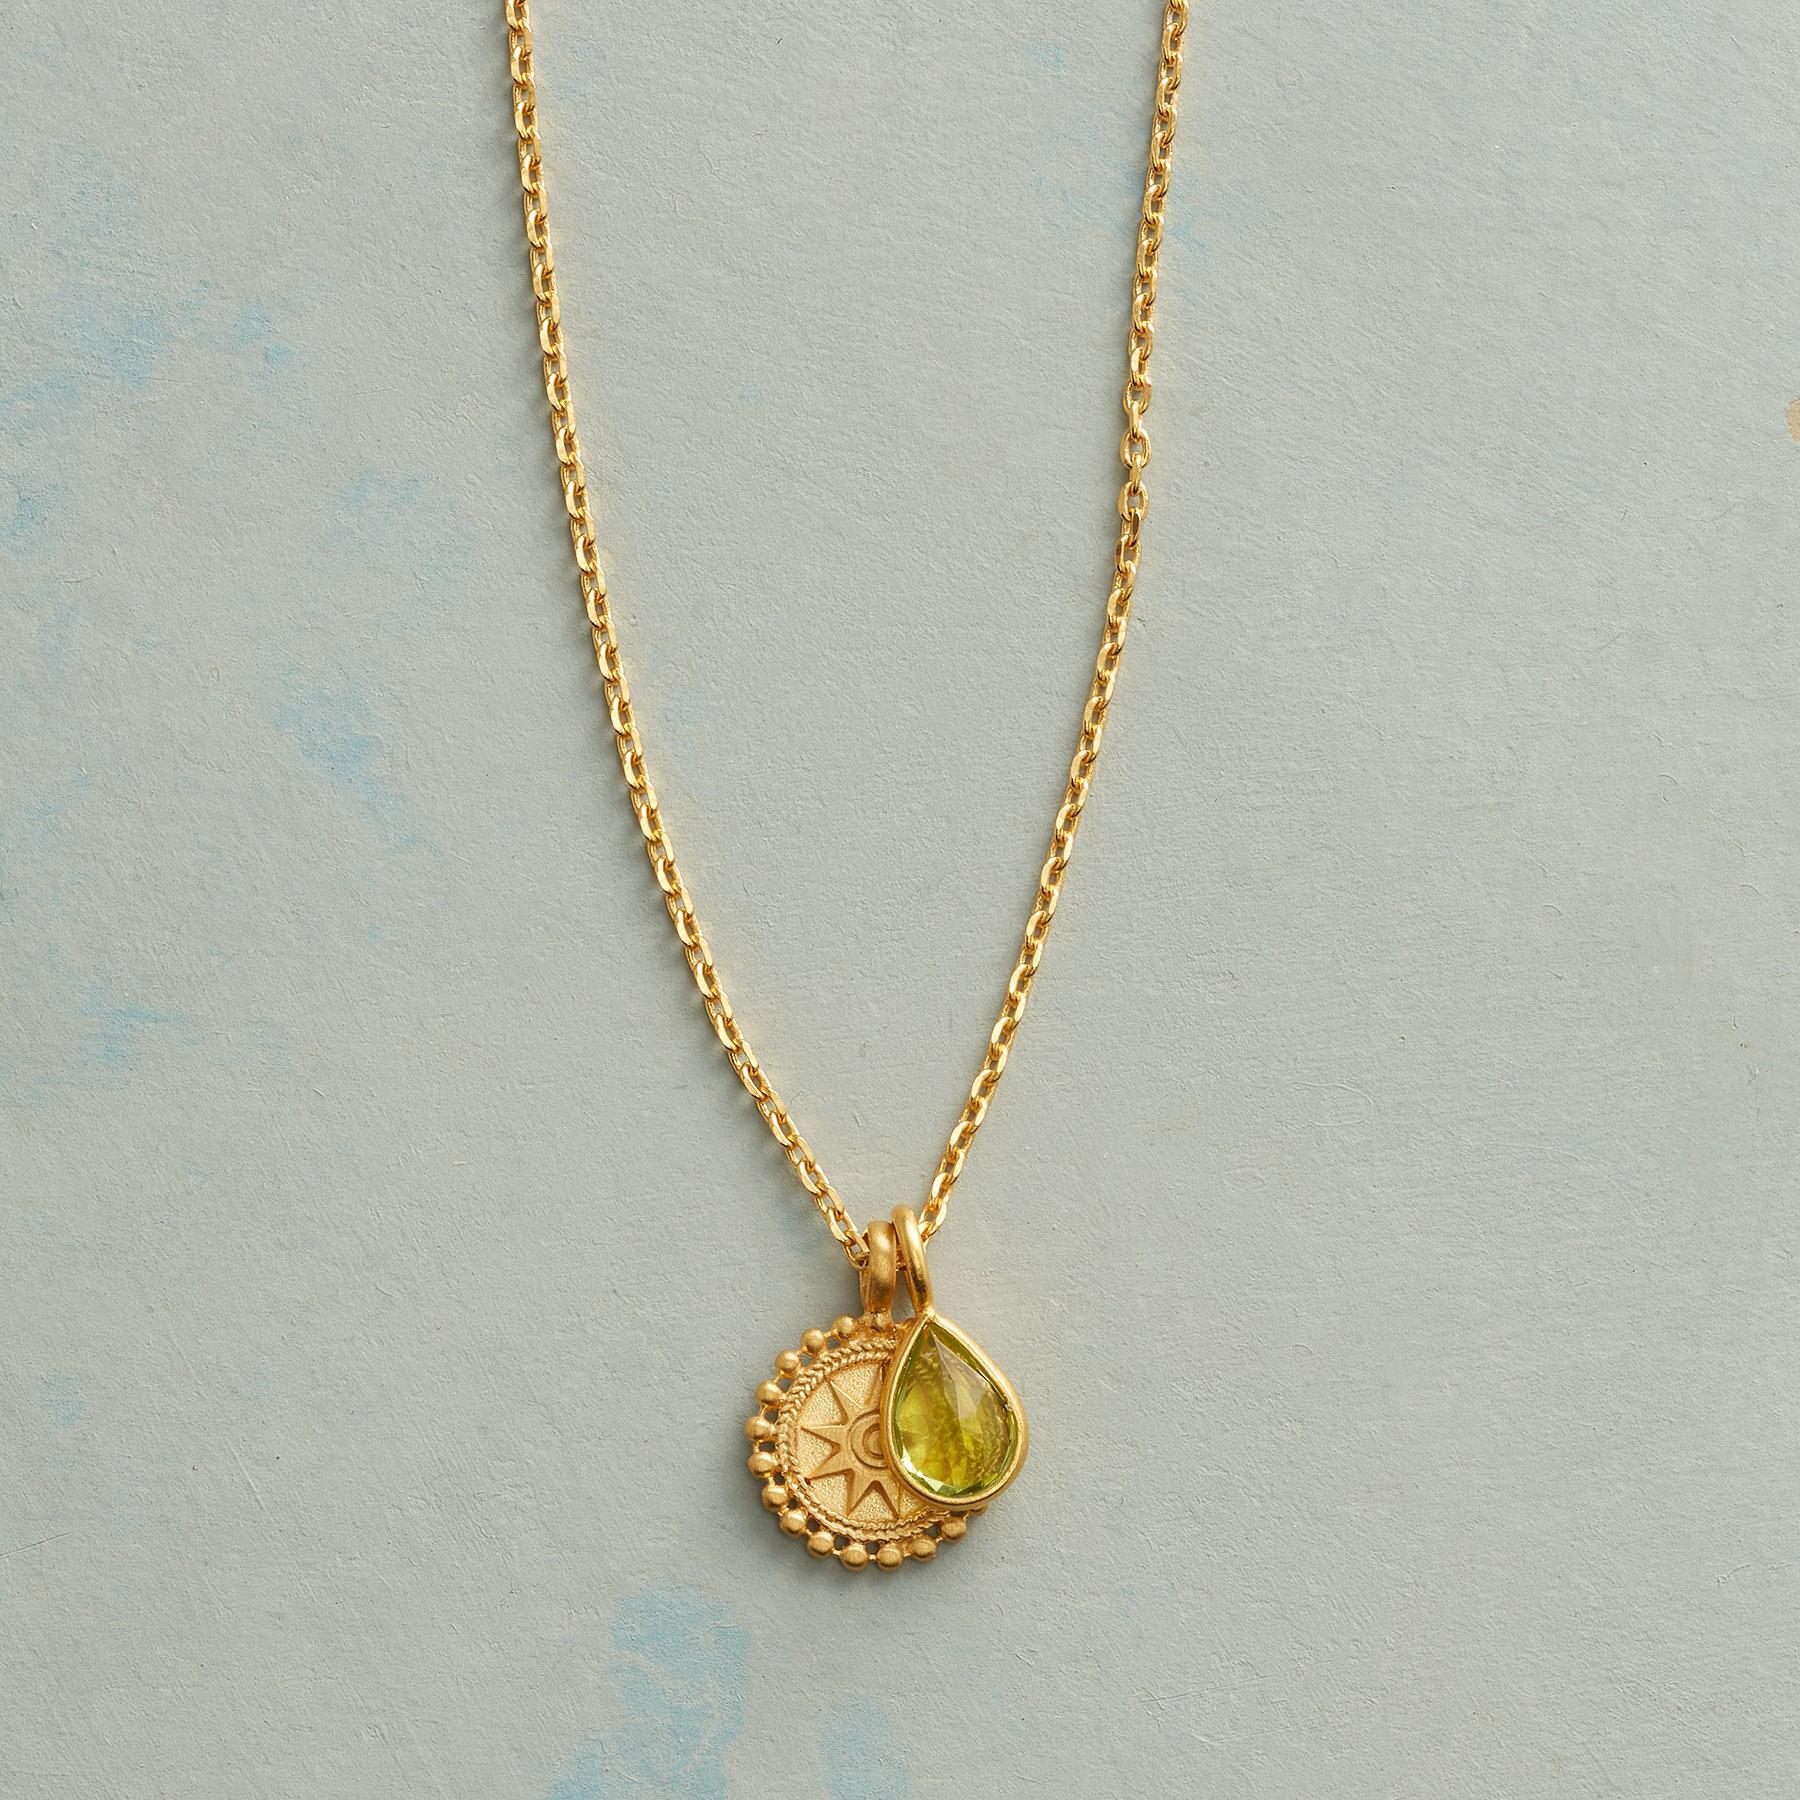 SUNNYSIDE BIRTHSTONE NECKLACE: View 1